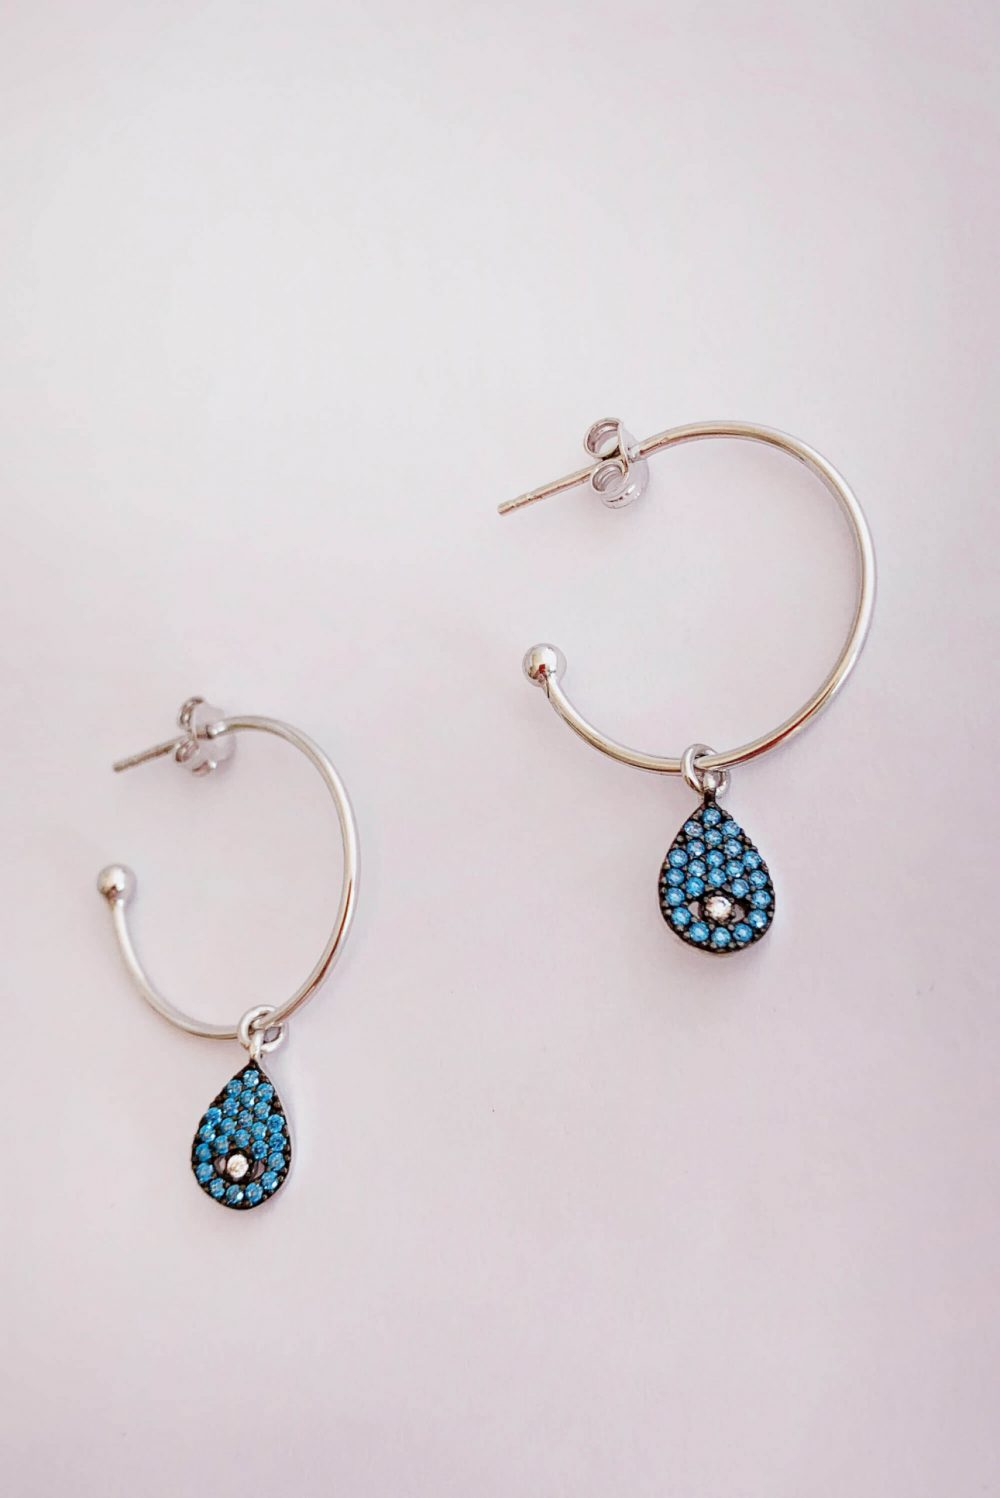 Earrings by Dora Syrrou